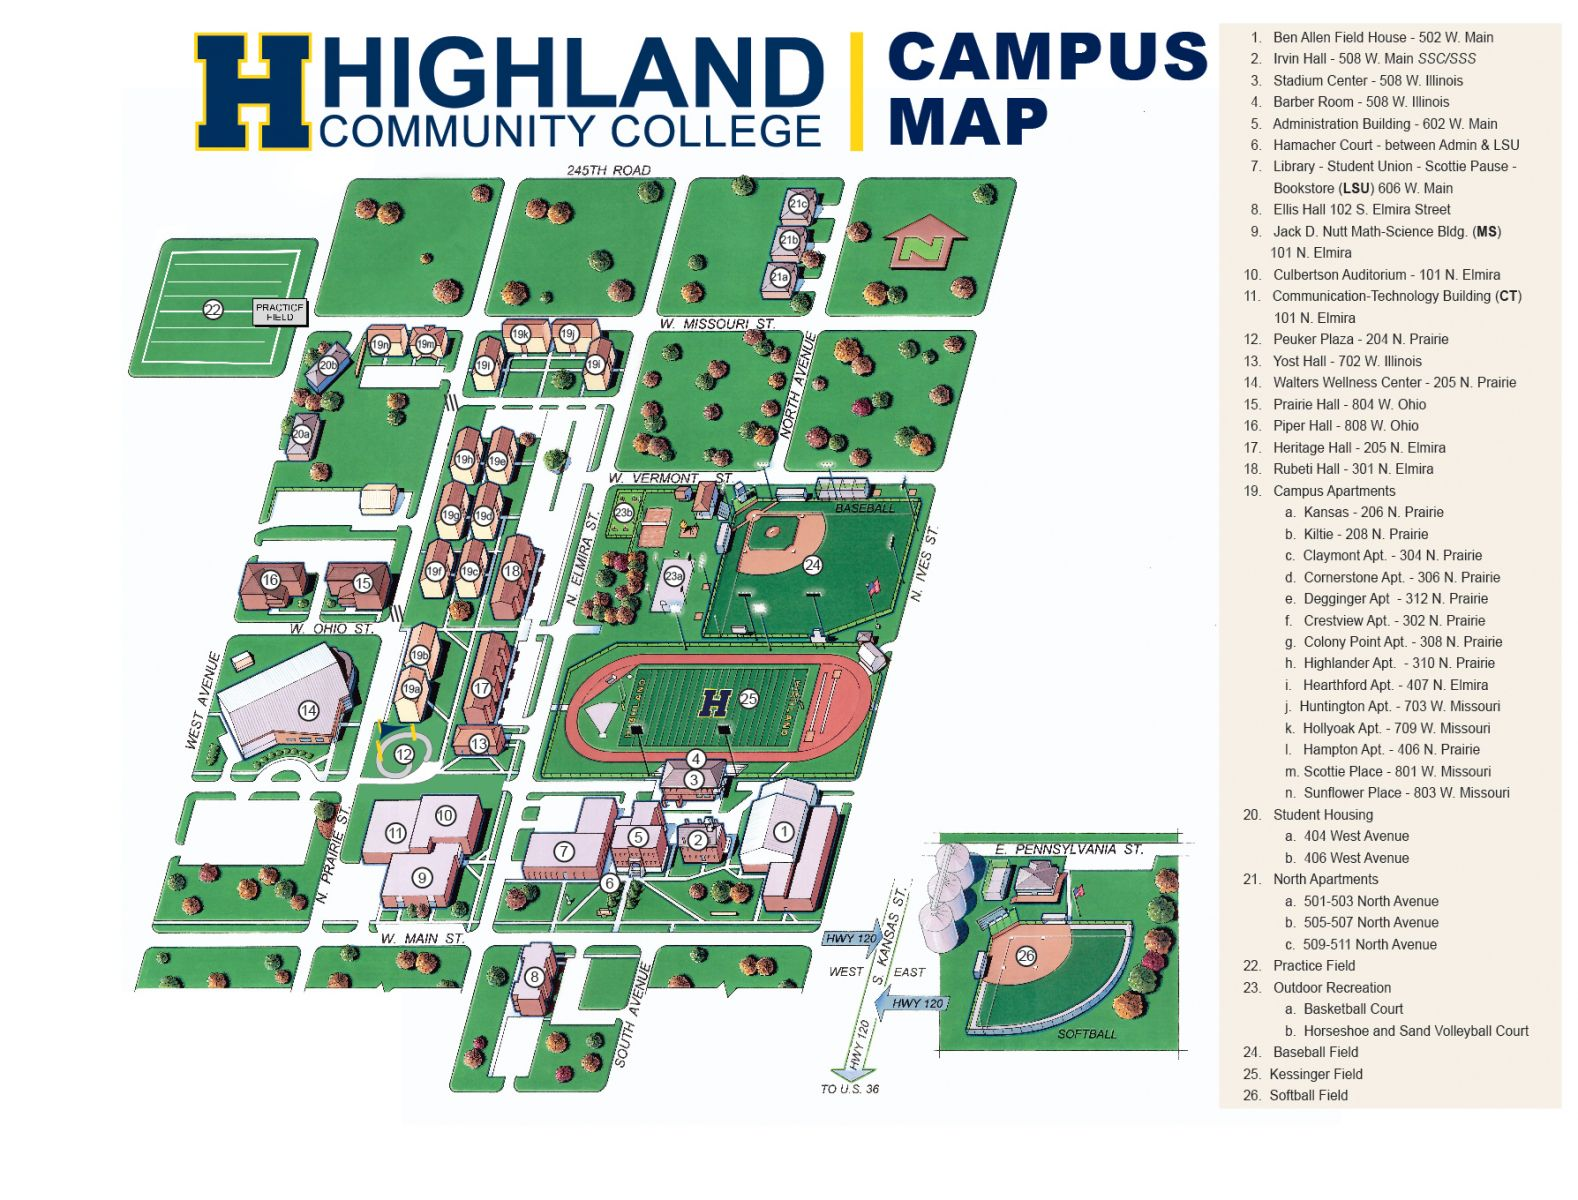 Jackson College Campus Map.Campus Map Highland Community College My Hcc